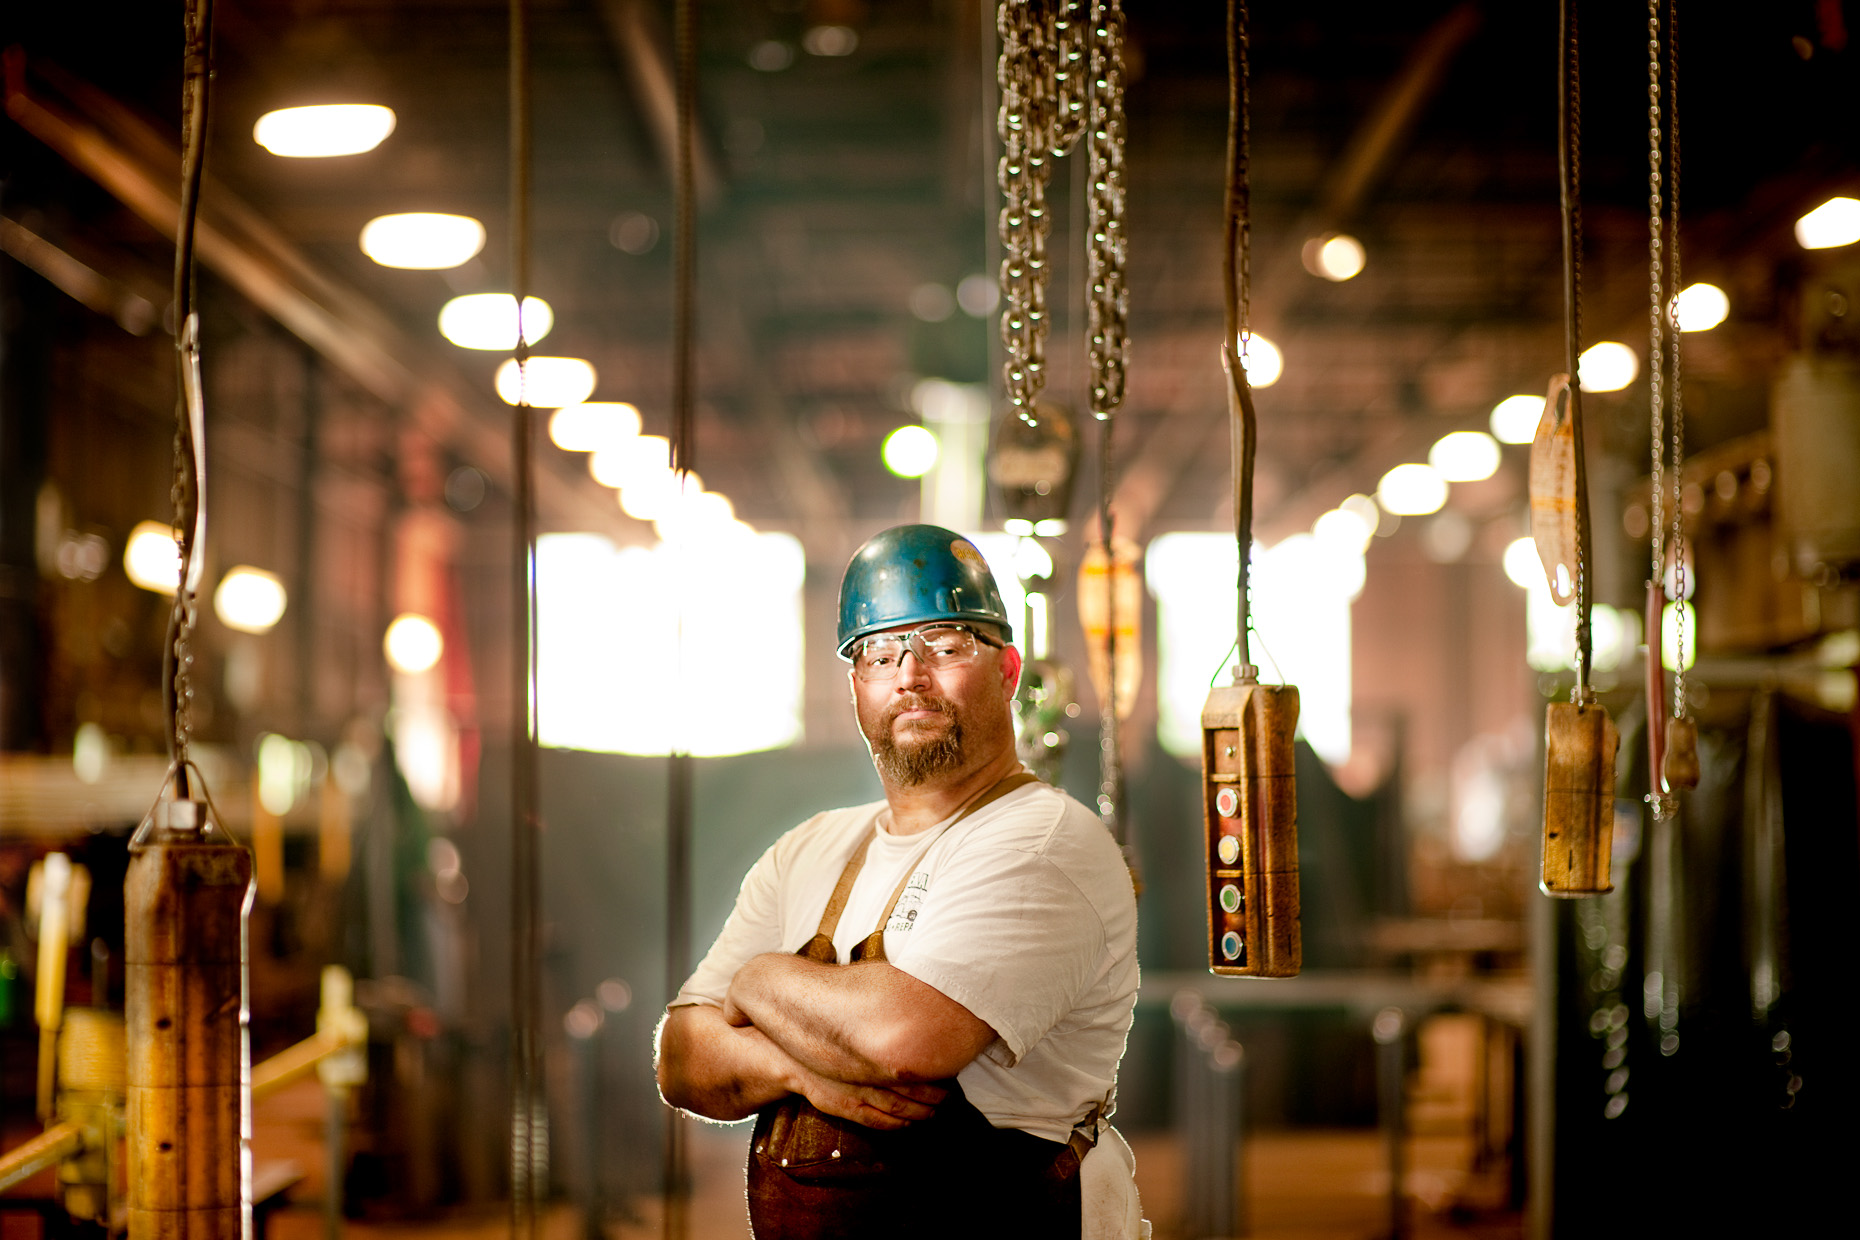 Manufacturing Worker in Hardhat | Commercial Photographer